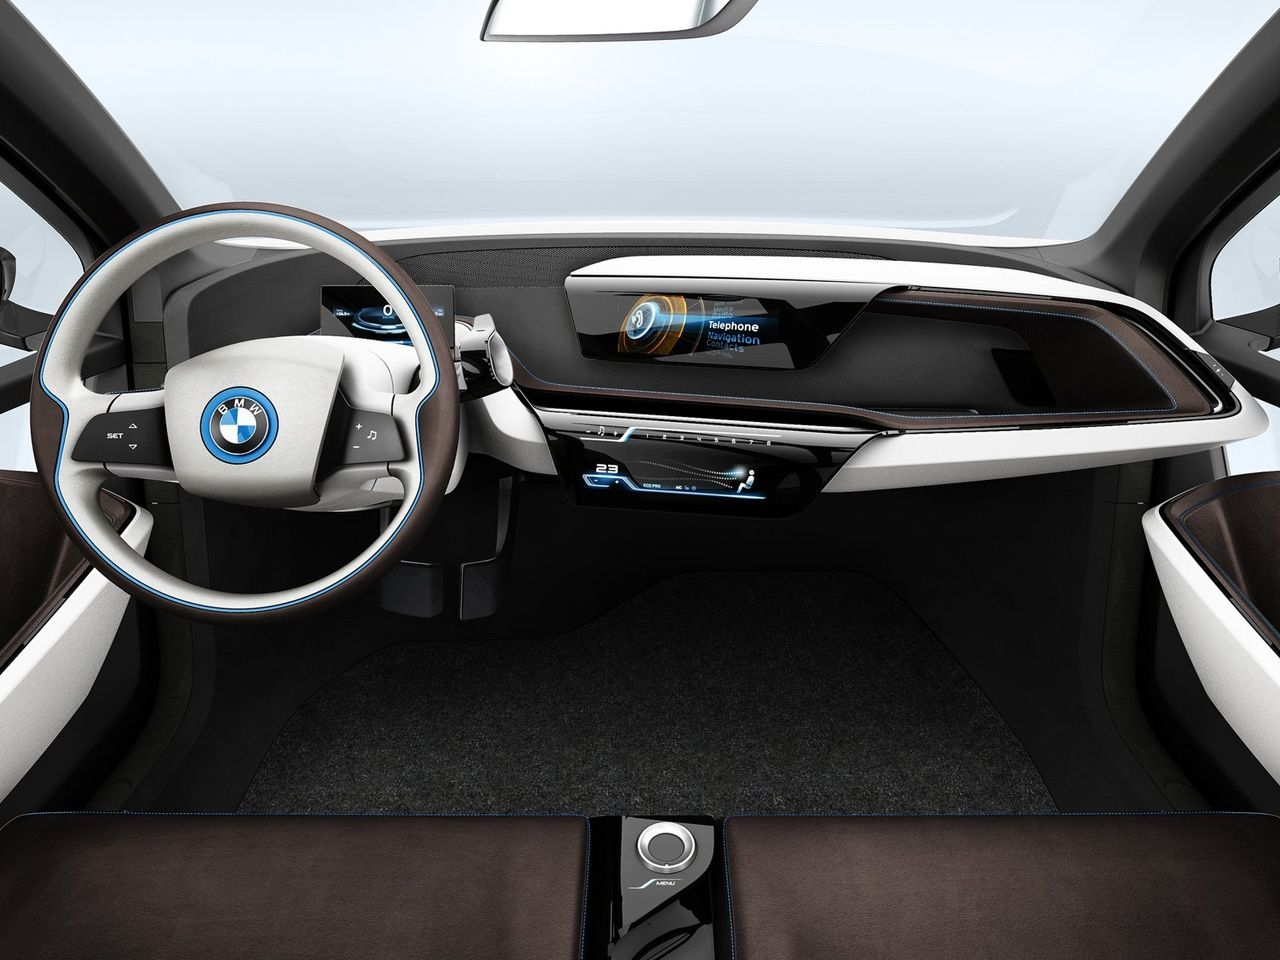 2013 bmw i3 concept interior dashboard 1280 960 car interior pinterest. Black Bedroom Furniture Sets. Home Design Ideas